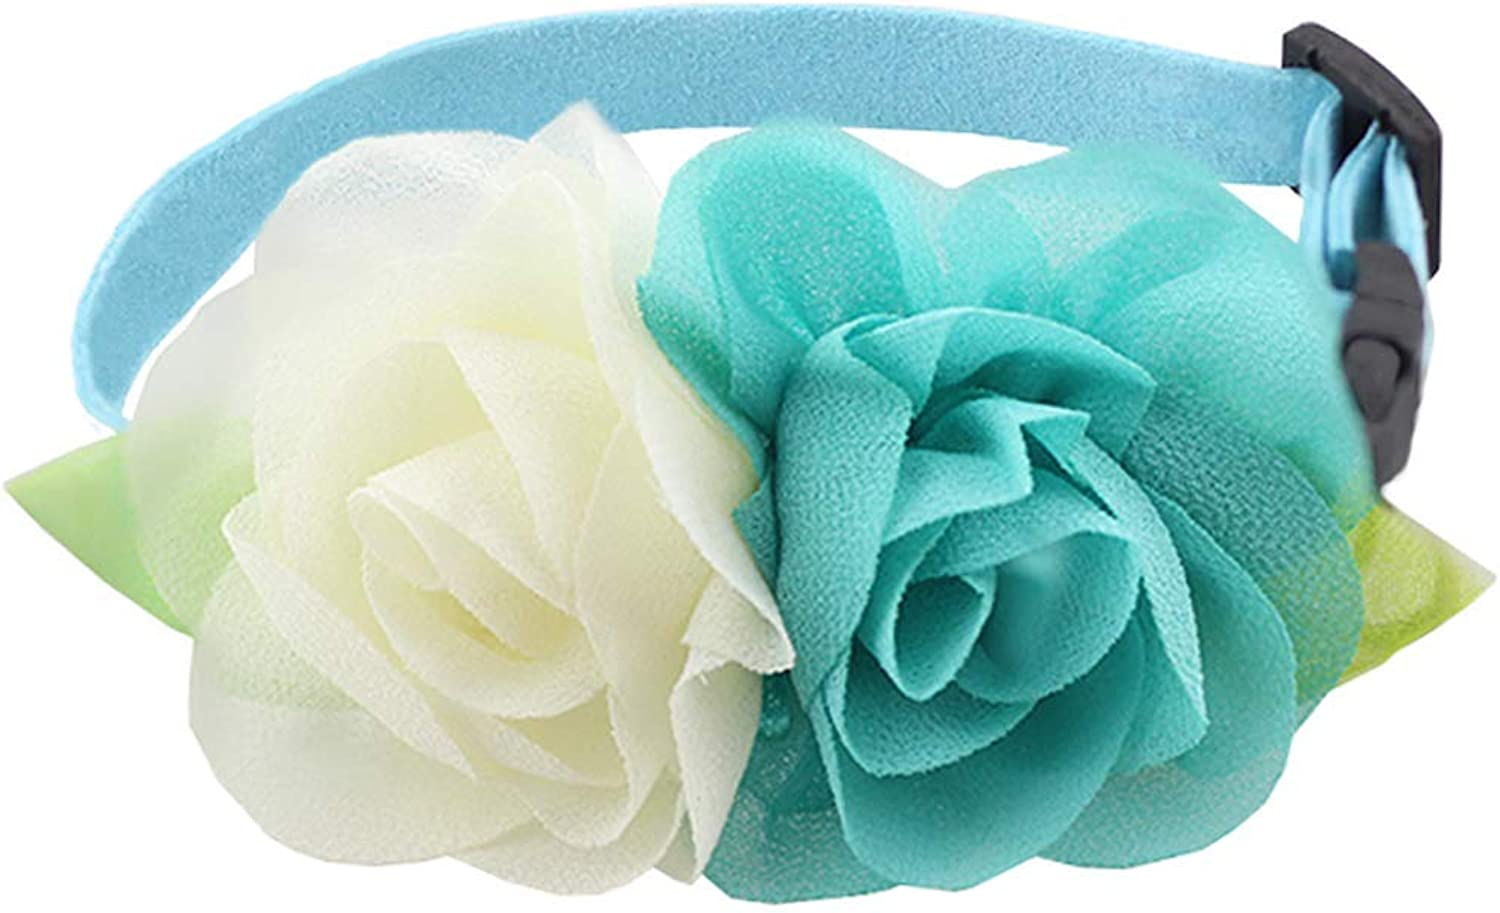 ANIAC Pet Charm Flowers Collar Adjustable Floral Neck Accessories Soft Outfit Cats Puppy Small Dogs (XSmall, bluee)